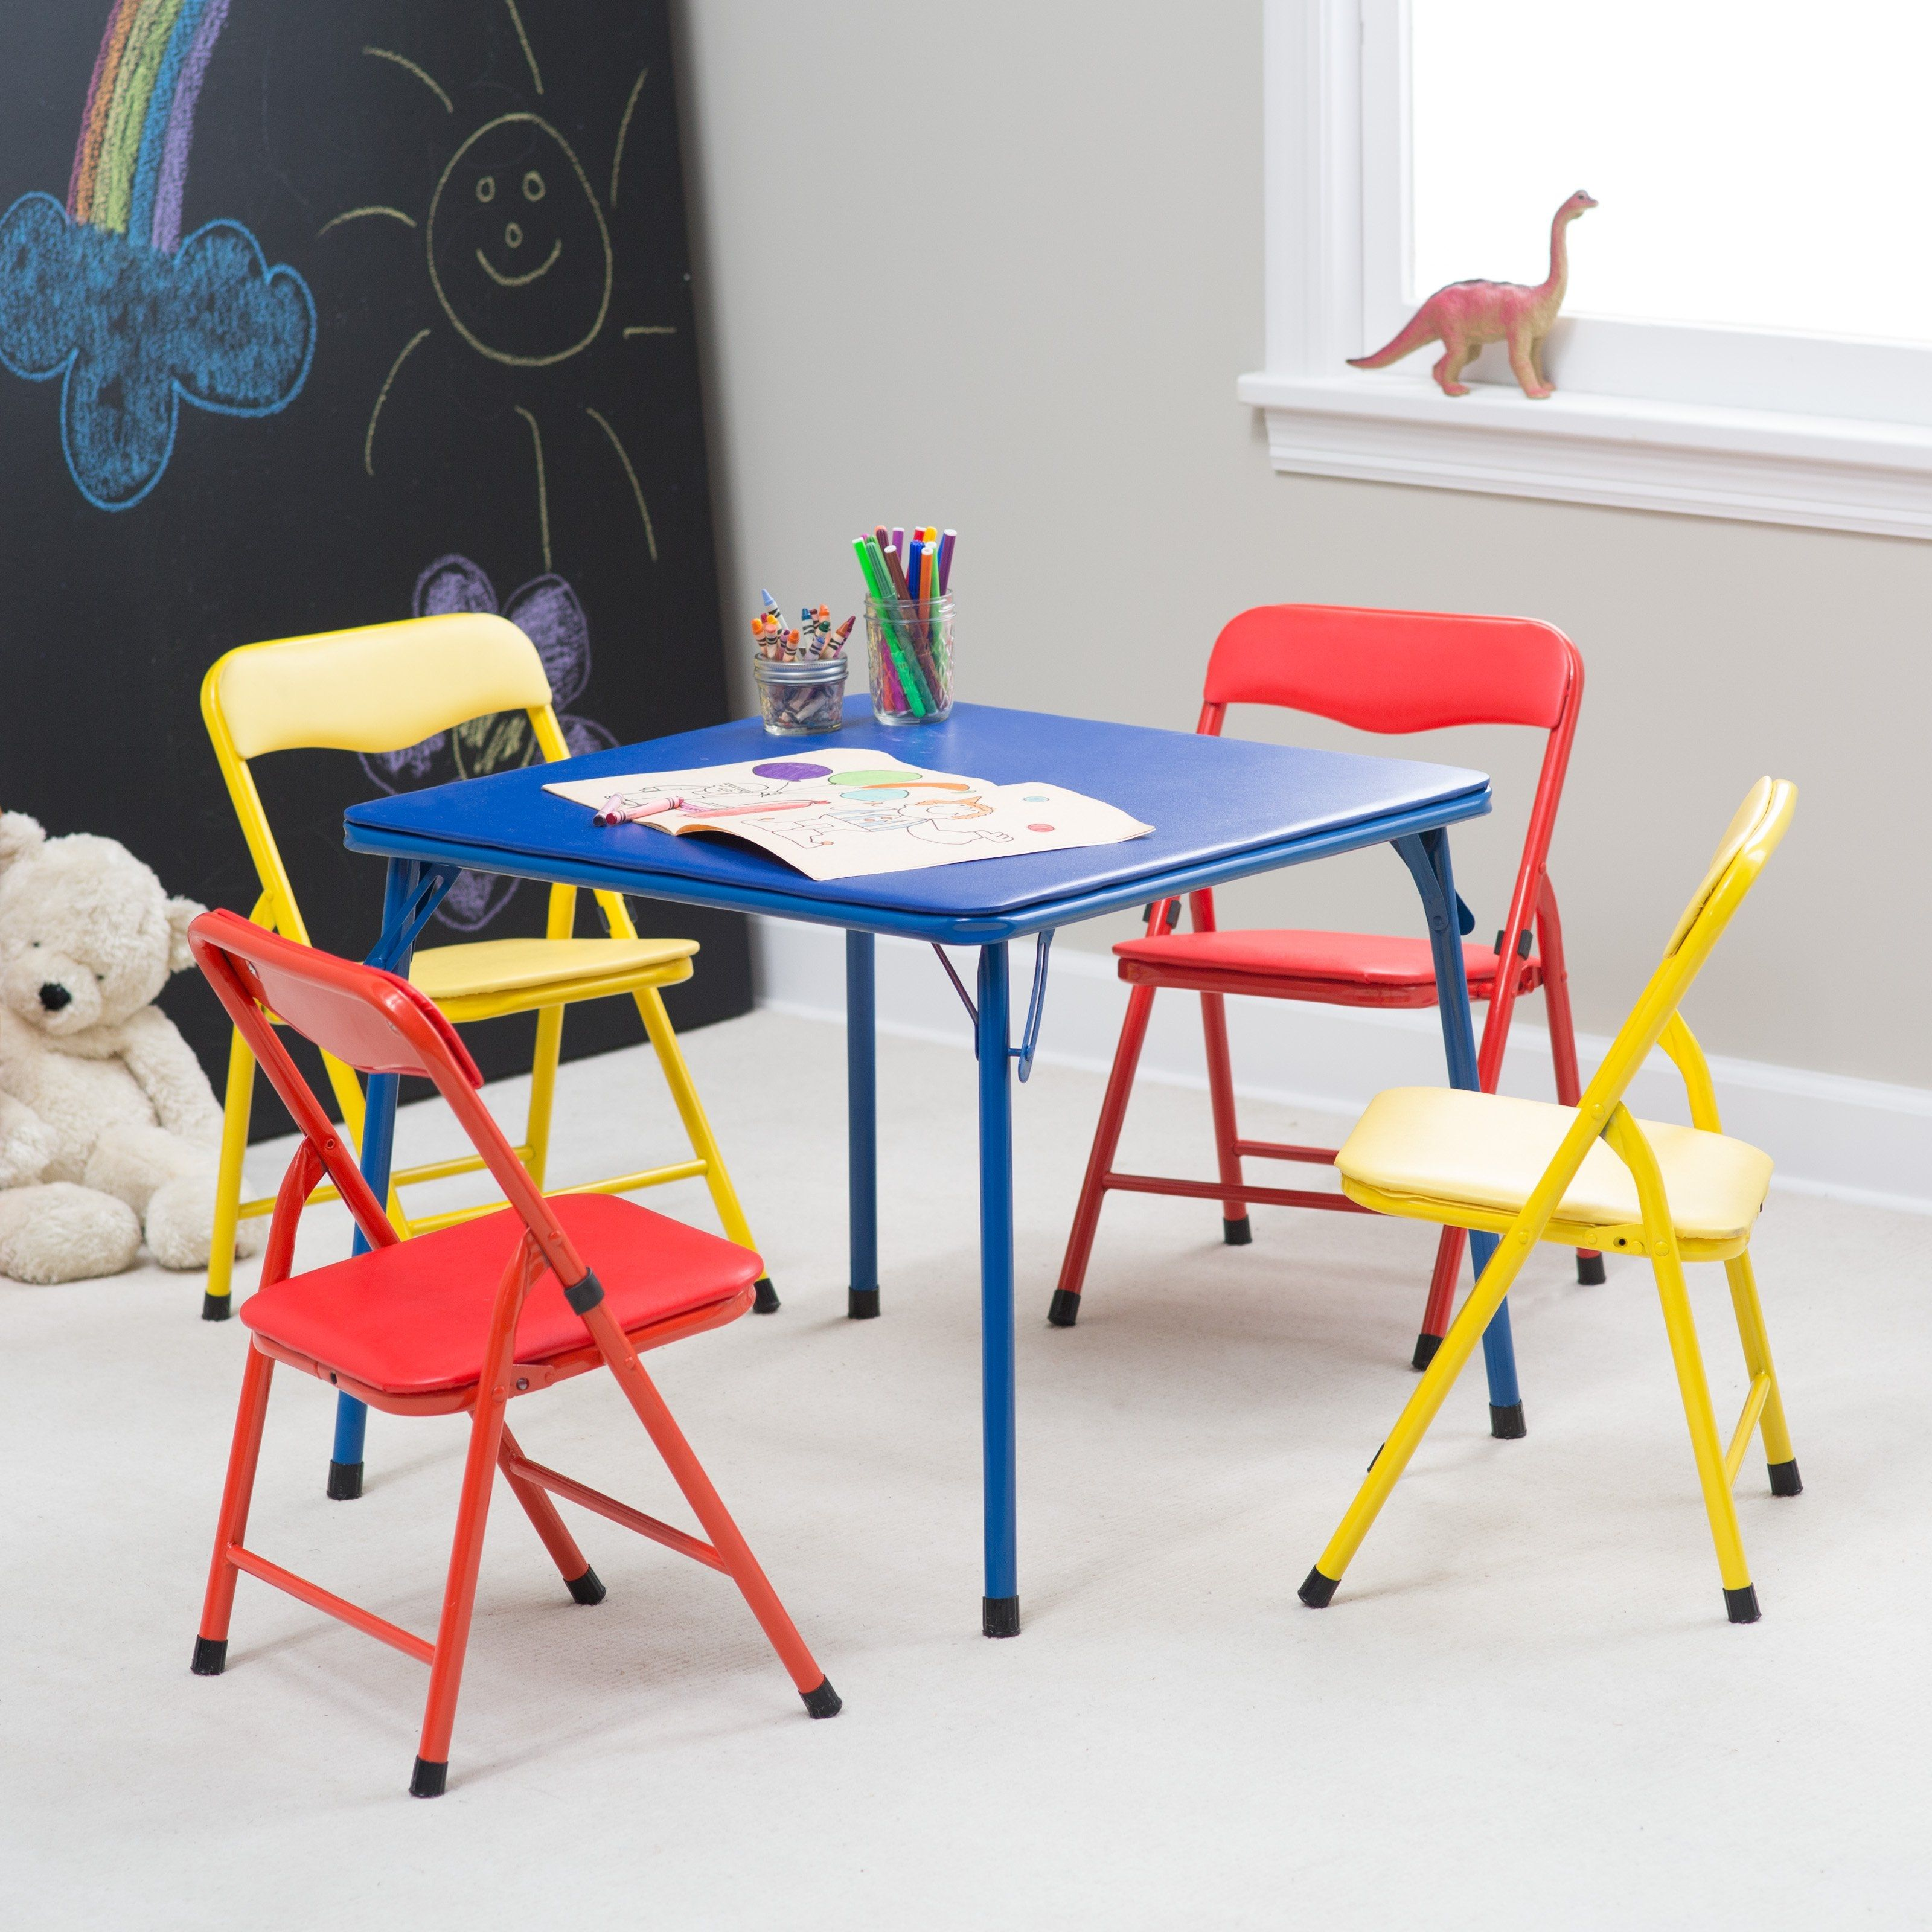 Childrens Folding Table And Chairs Cosco